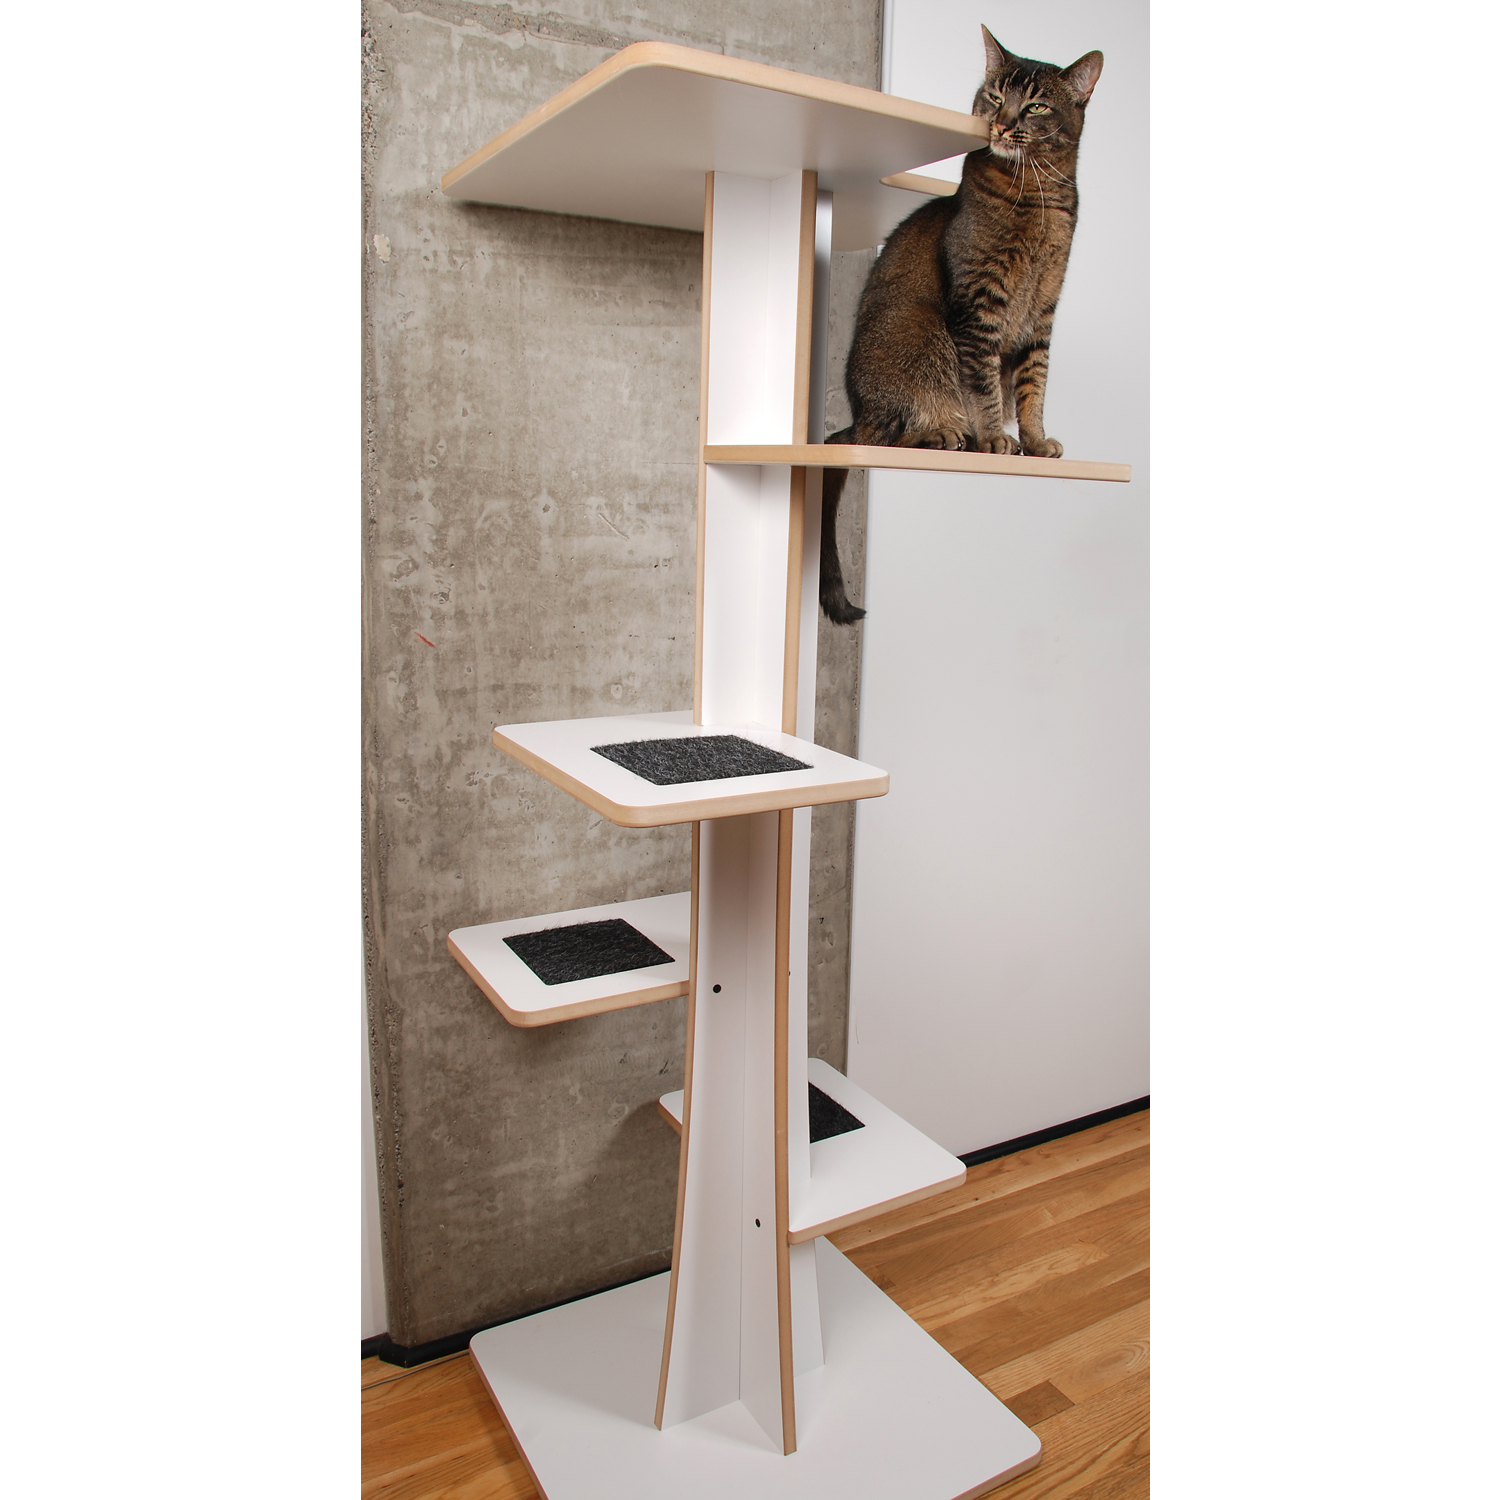 Baobab Modern Cat Tree Square Cat Habitat Interiors Inside Ideas Interiors design about Everything [magnanprojects.com]